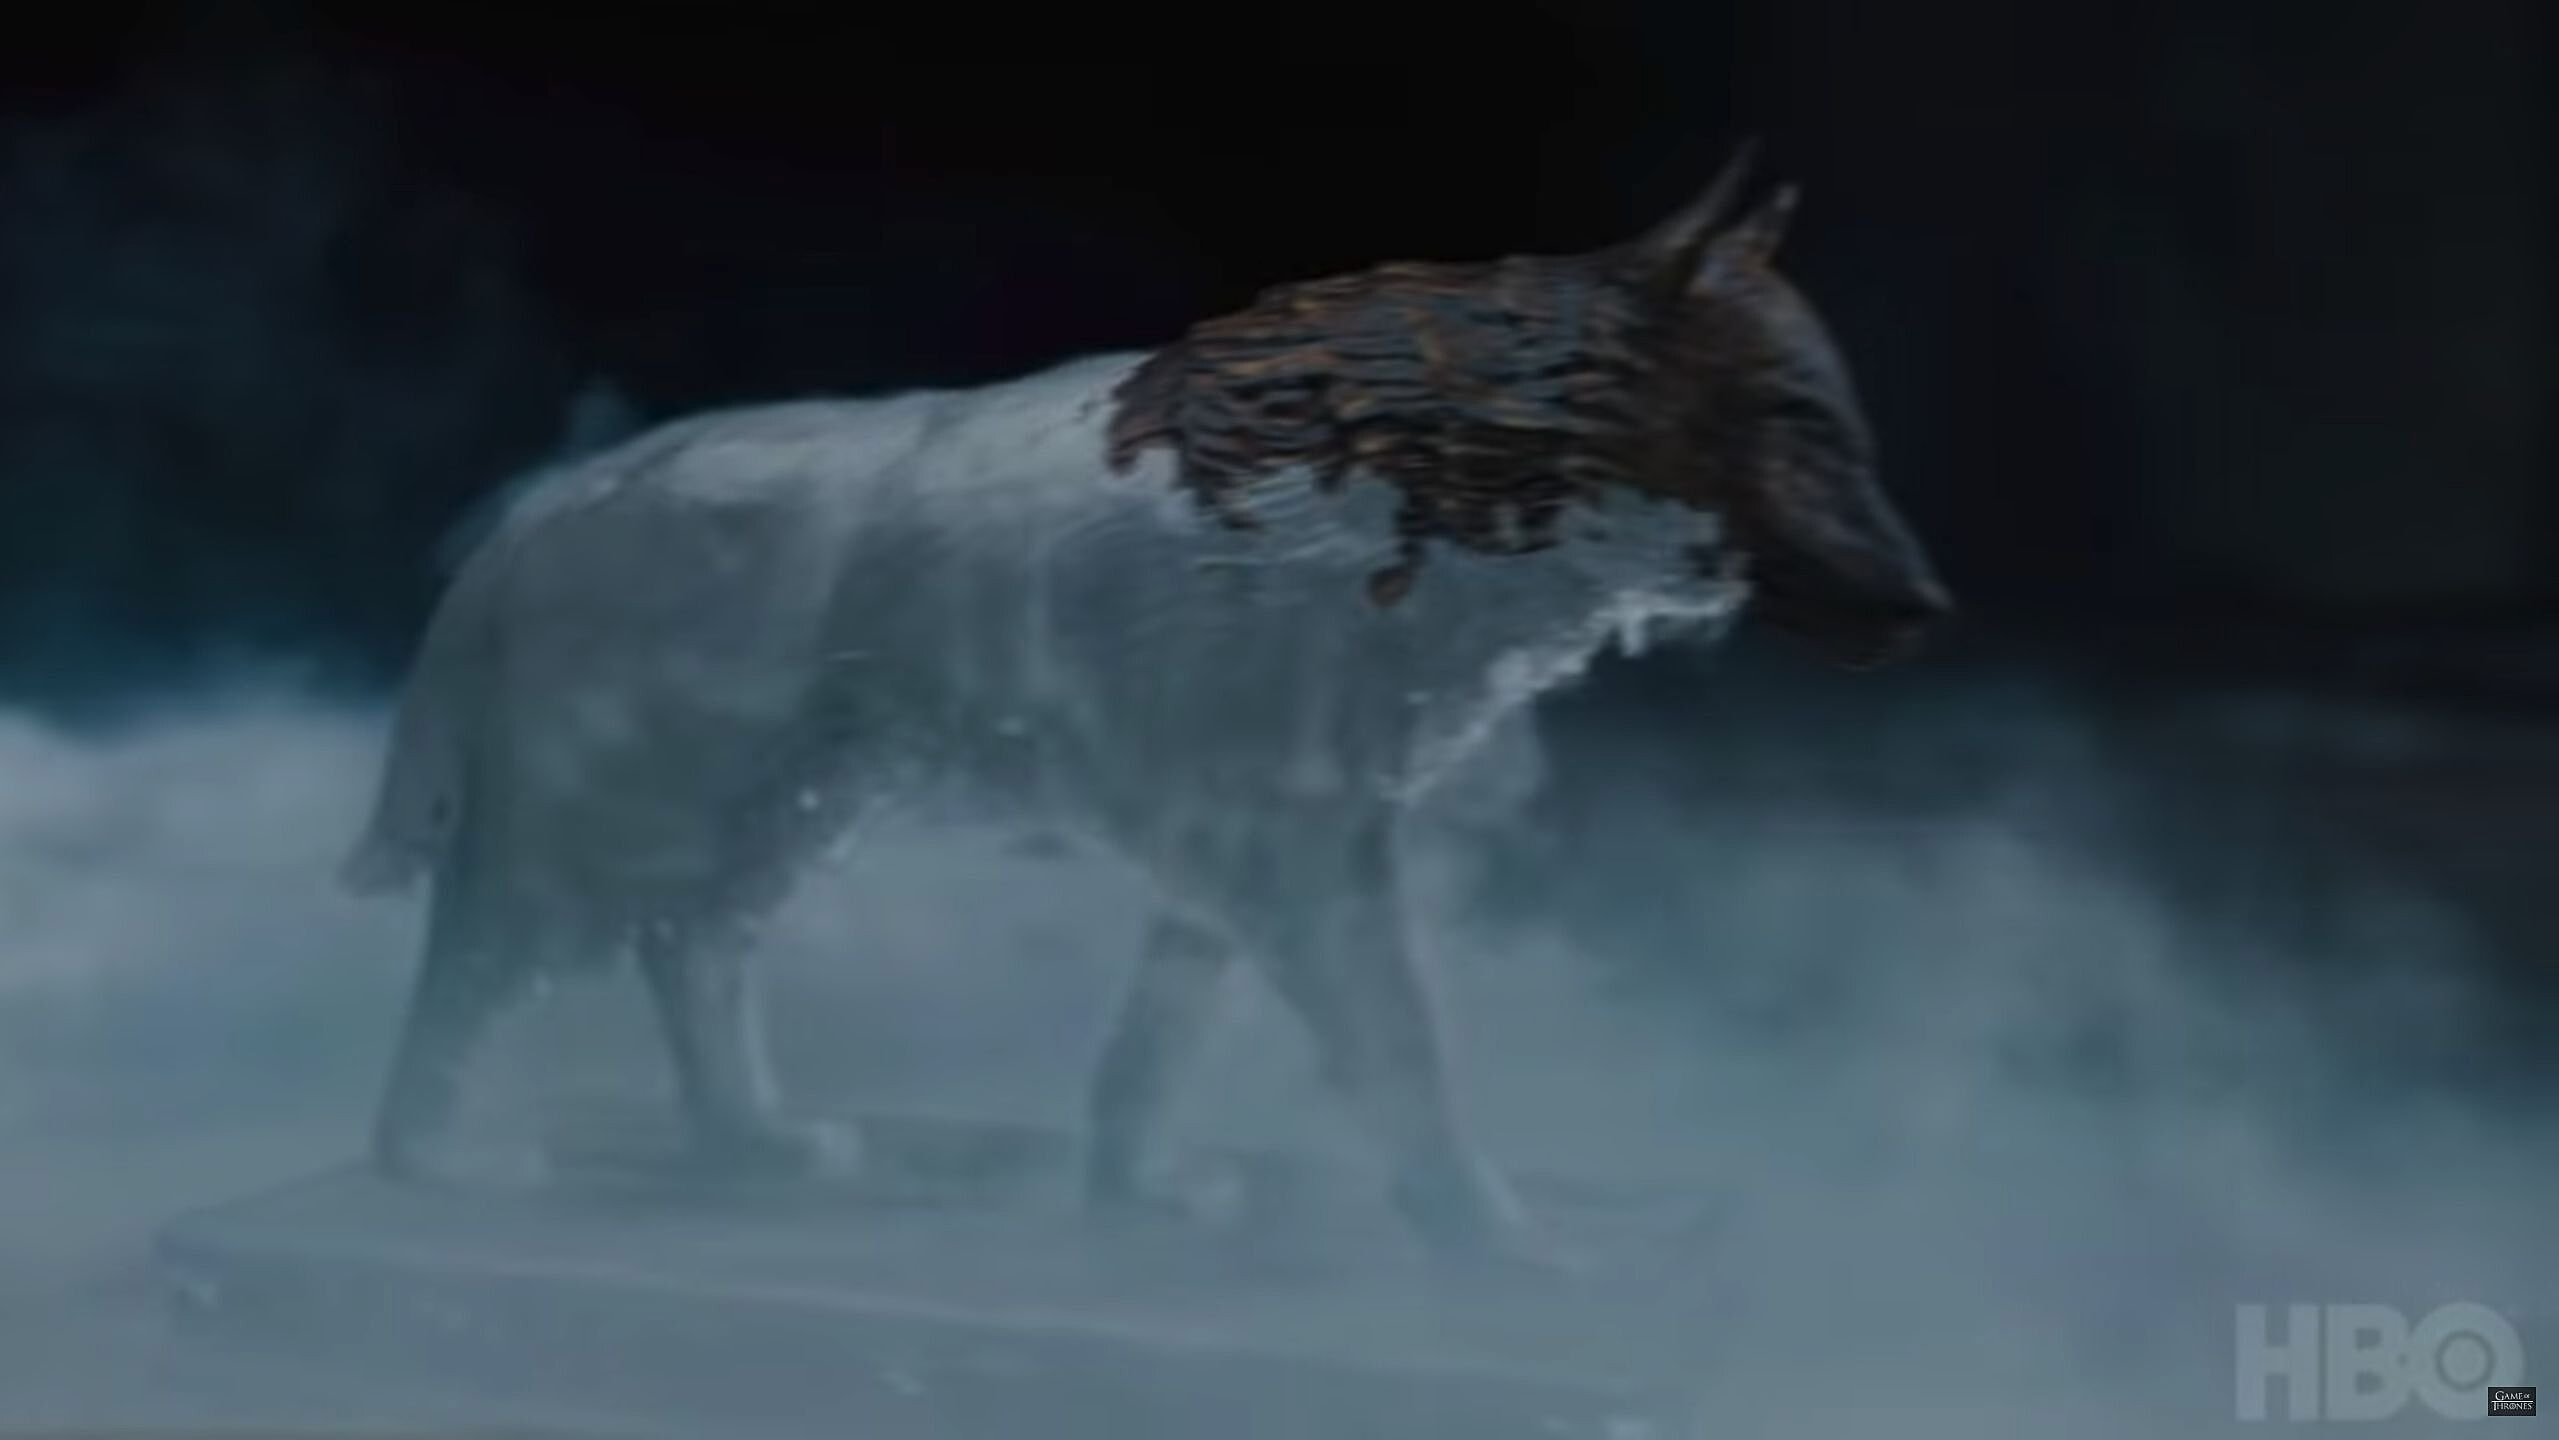 Screencap breakdown: The Game of Thrones season 8 teaser ... on spooksville map, downton abbey map, narnia map, bloodline map, got map, justified map, jericho map, qarth map, camelot map, walking dead map, a storm of swords map, gendry map, world map, star trek map, guild wars 2 map, clash of kings map, dallas map, valyria map, winterfell map, jersey shore map,